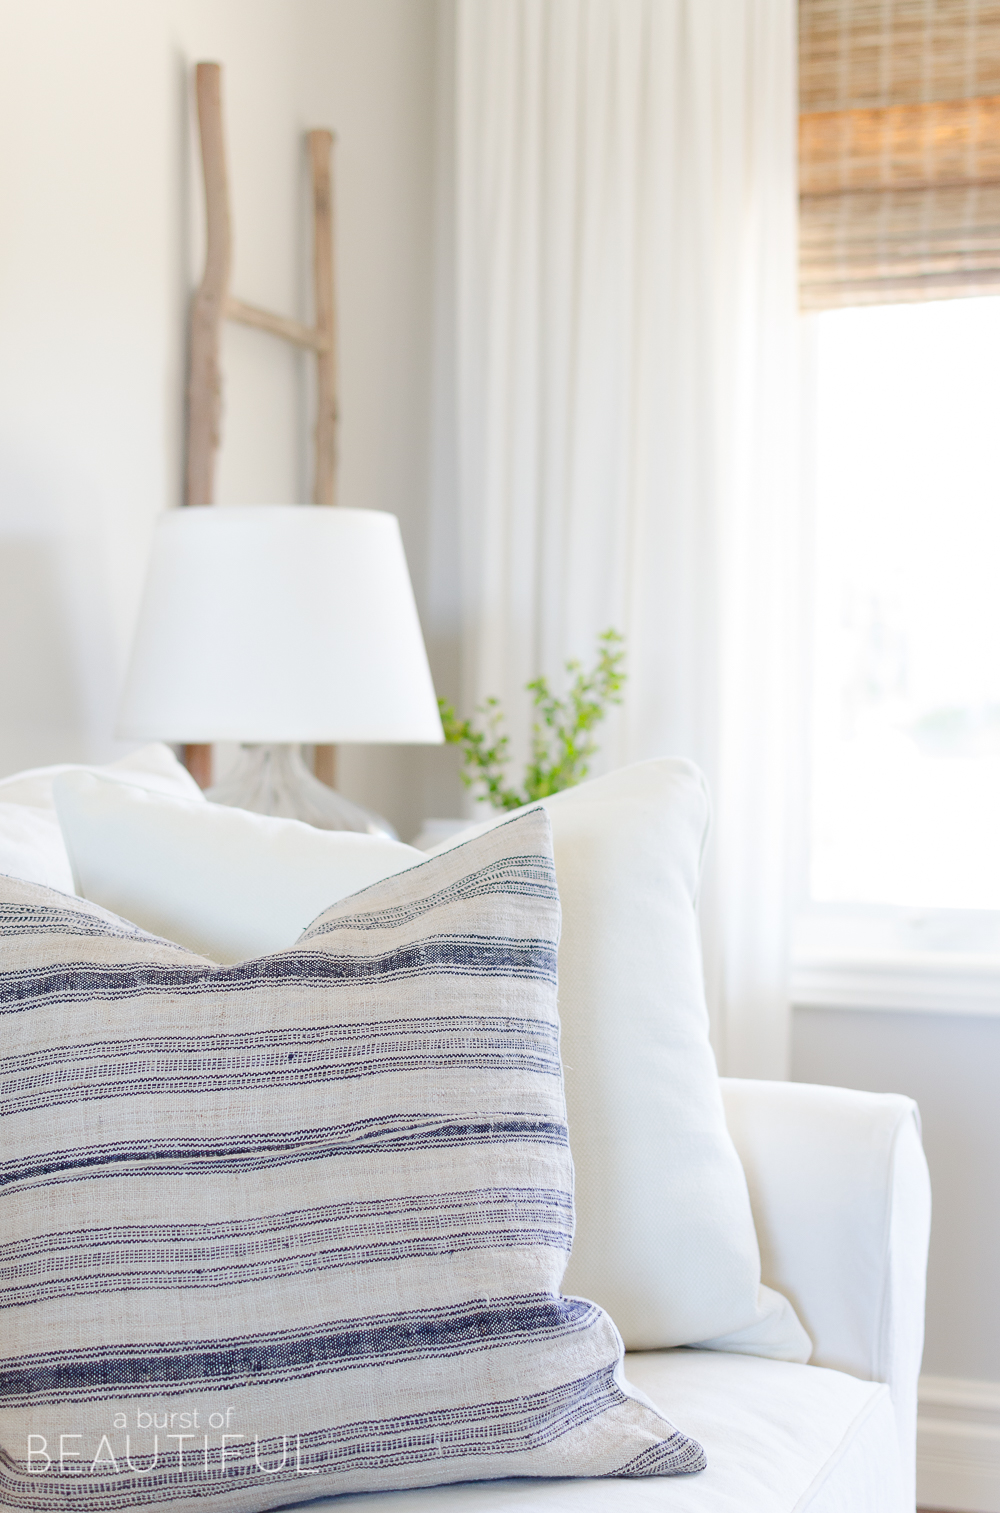 Elegant I Rely On Simple, Inexpensive Ways To Freshen Up The Look Of Our Home And  Keep Things From Feeling Stale Or Boring. Idea